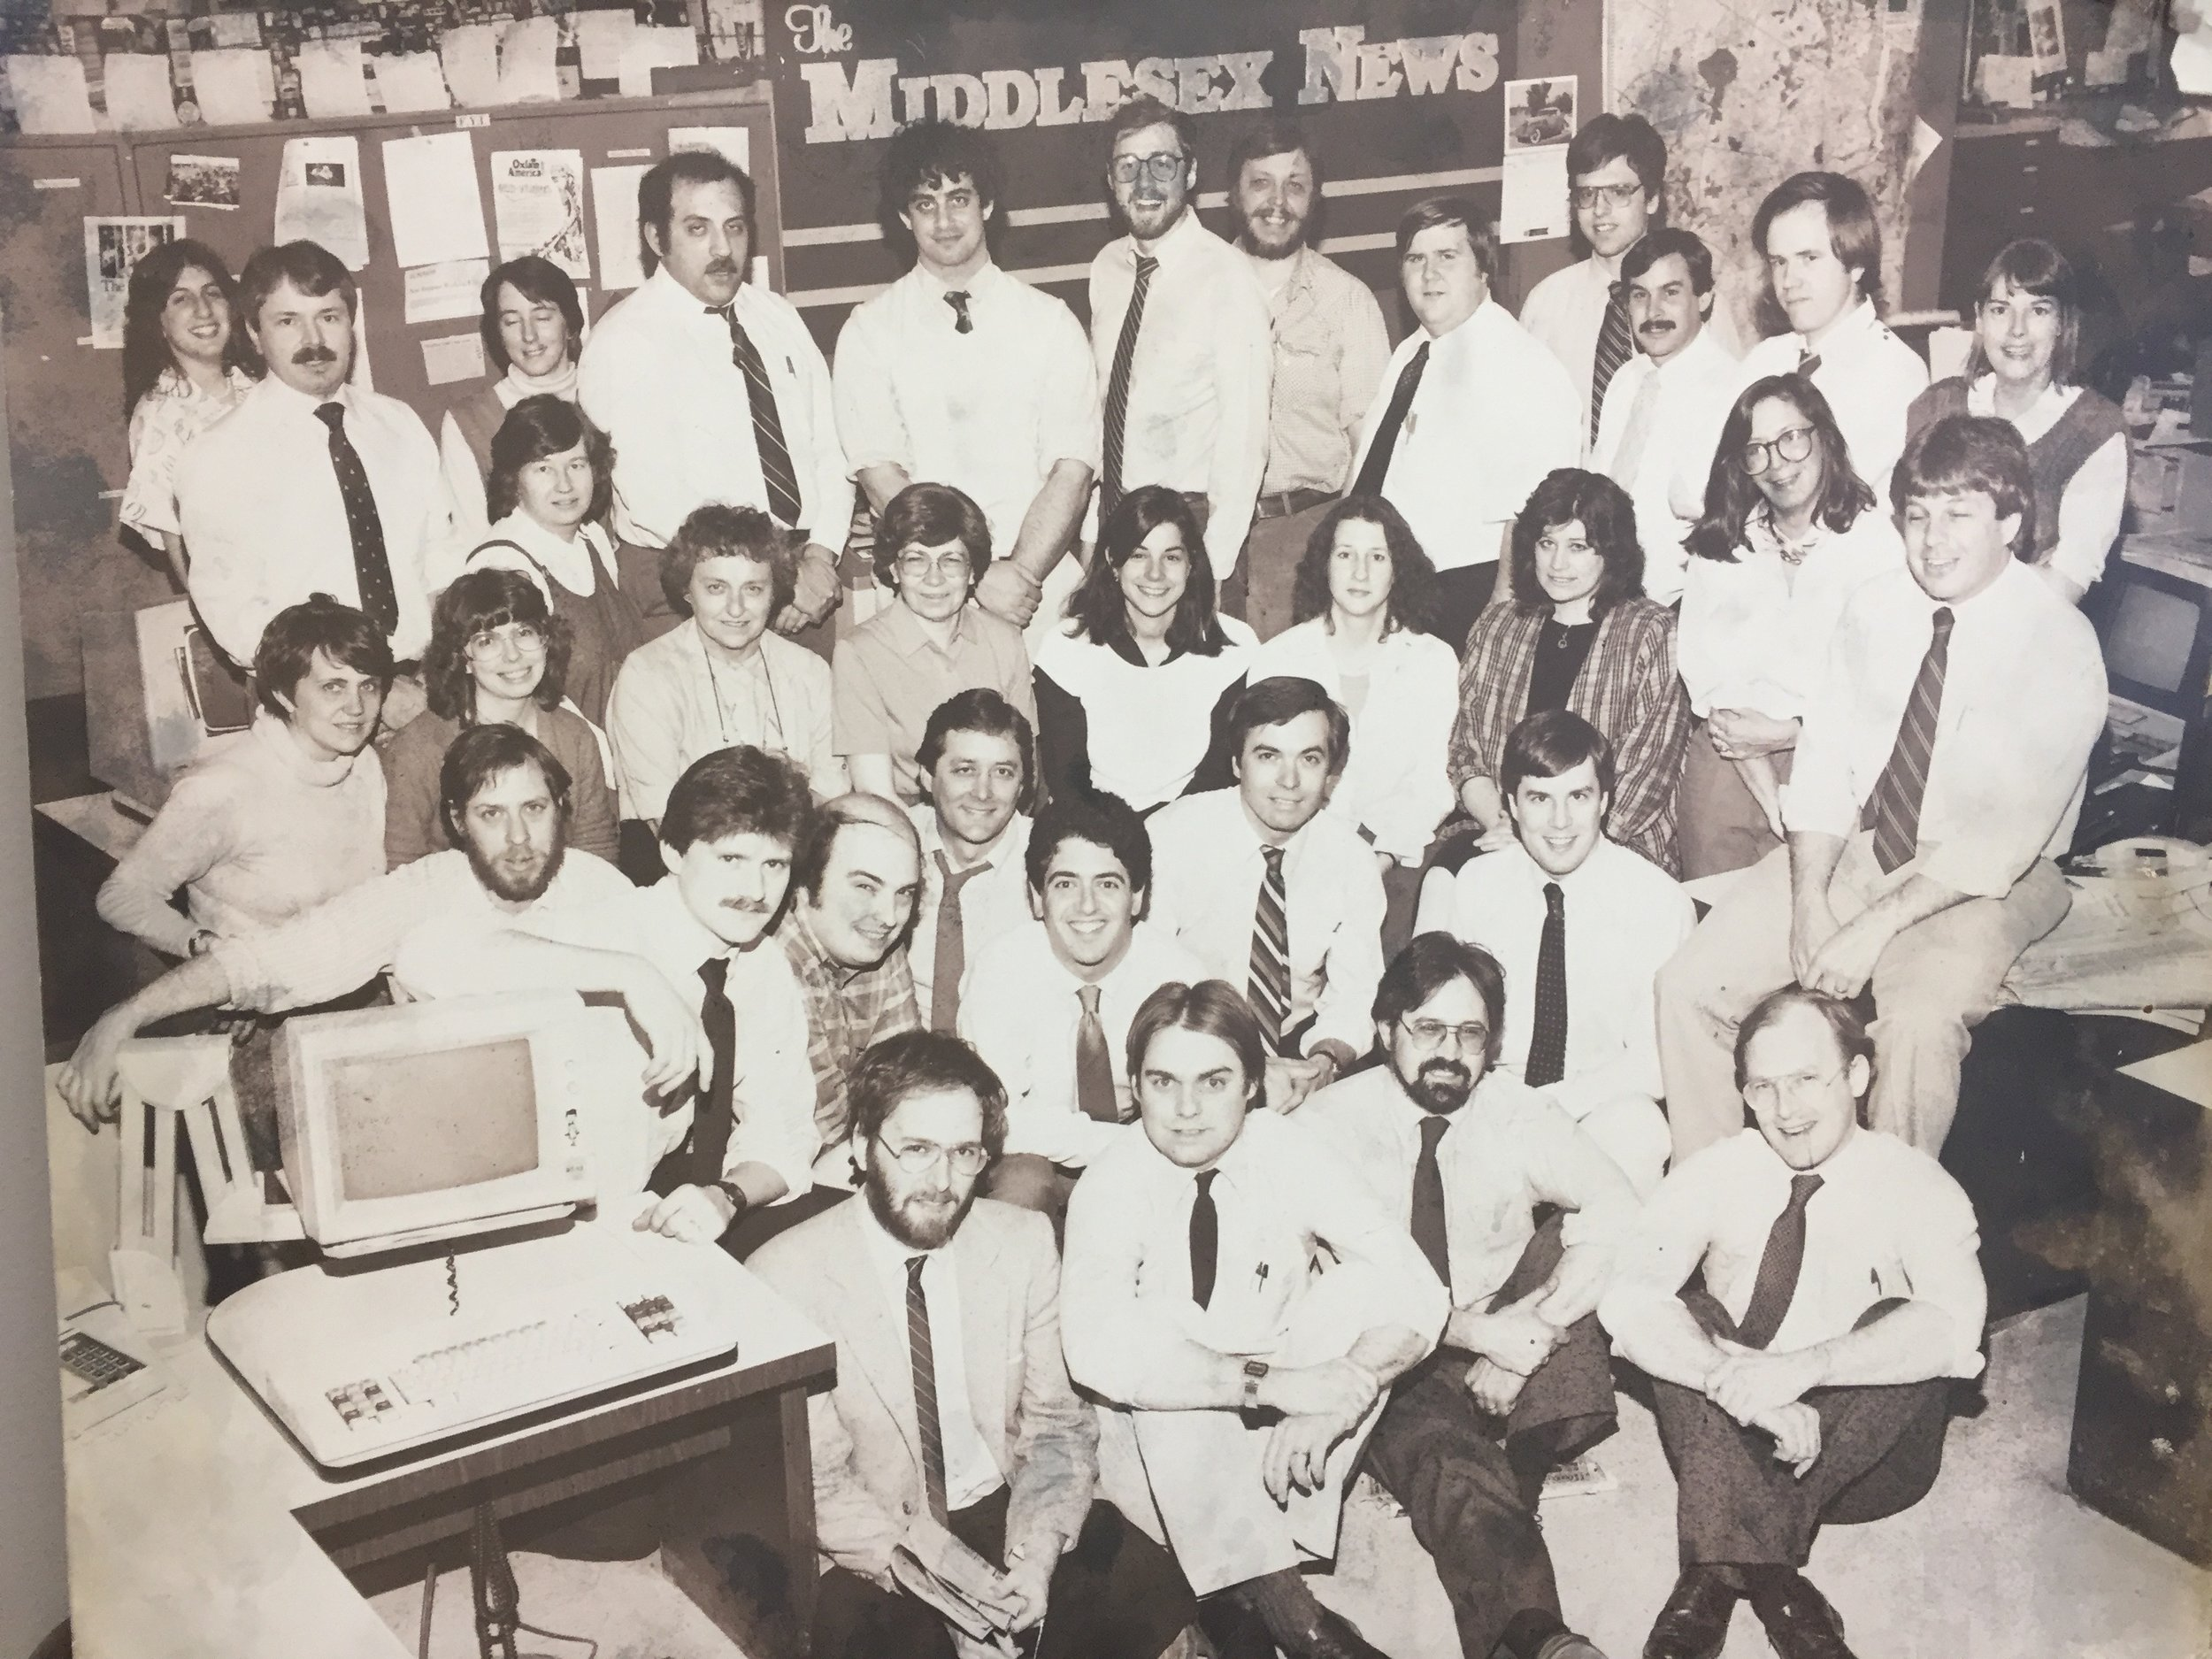 Most of the newsroom staff at the Middlesex News, circa 1986